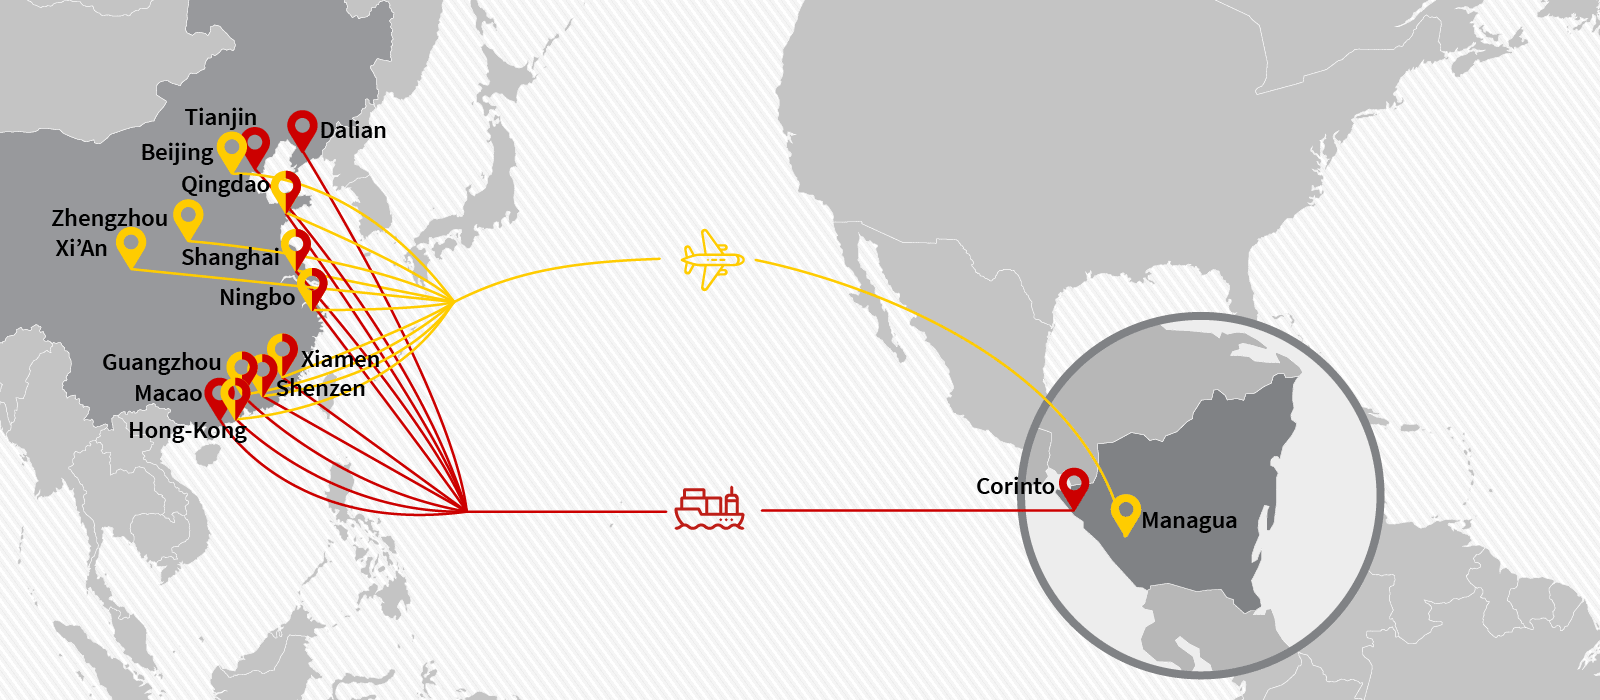 Cargo & freight shipping from China to Nicaragua by Air Charter or Ocean Container - Main POL, POD & Routes